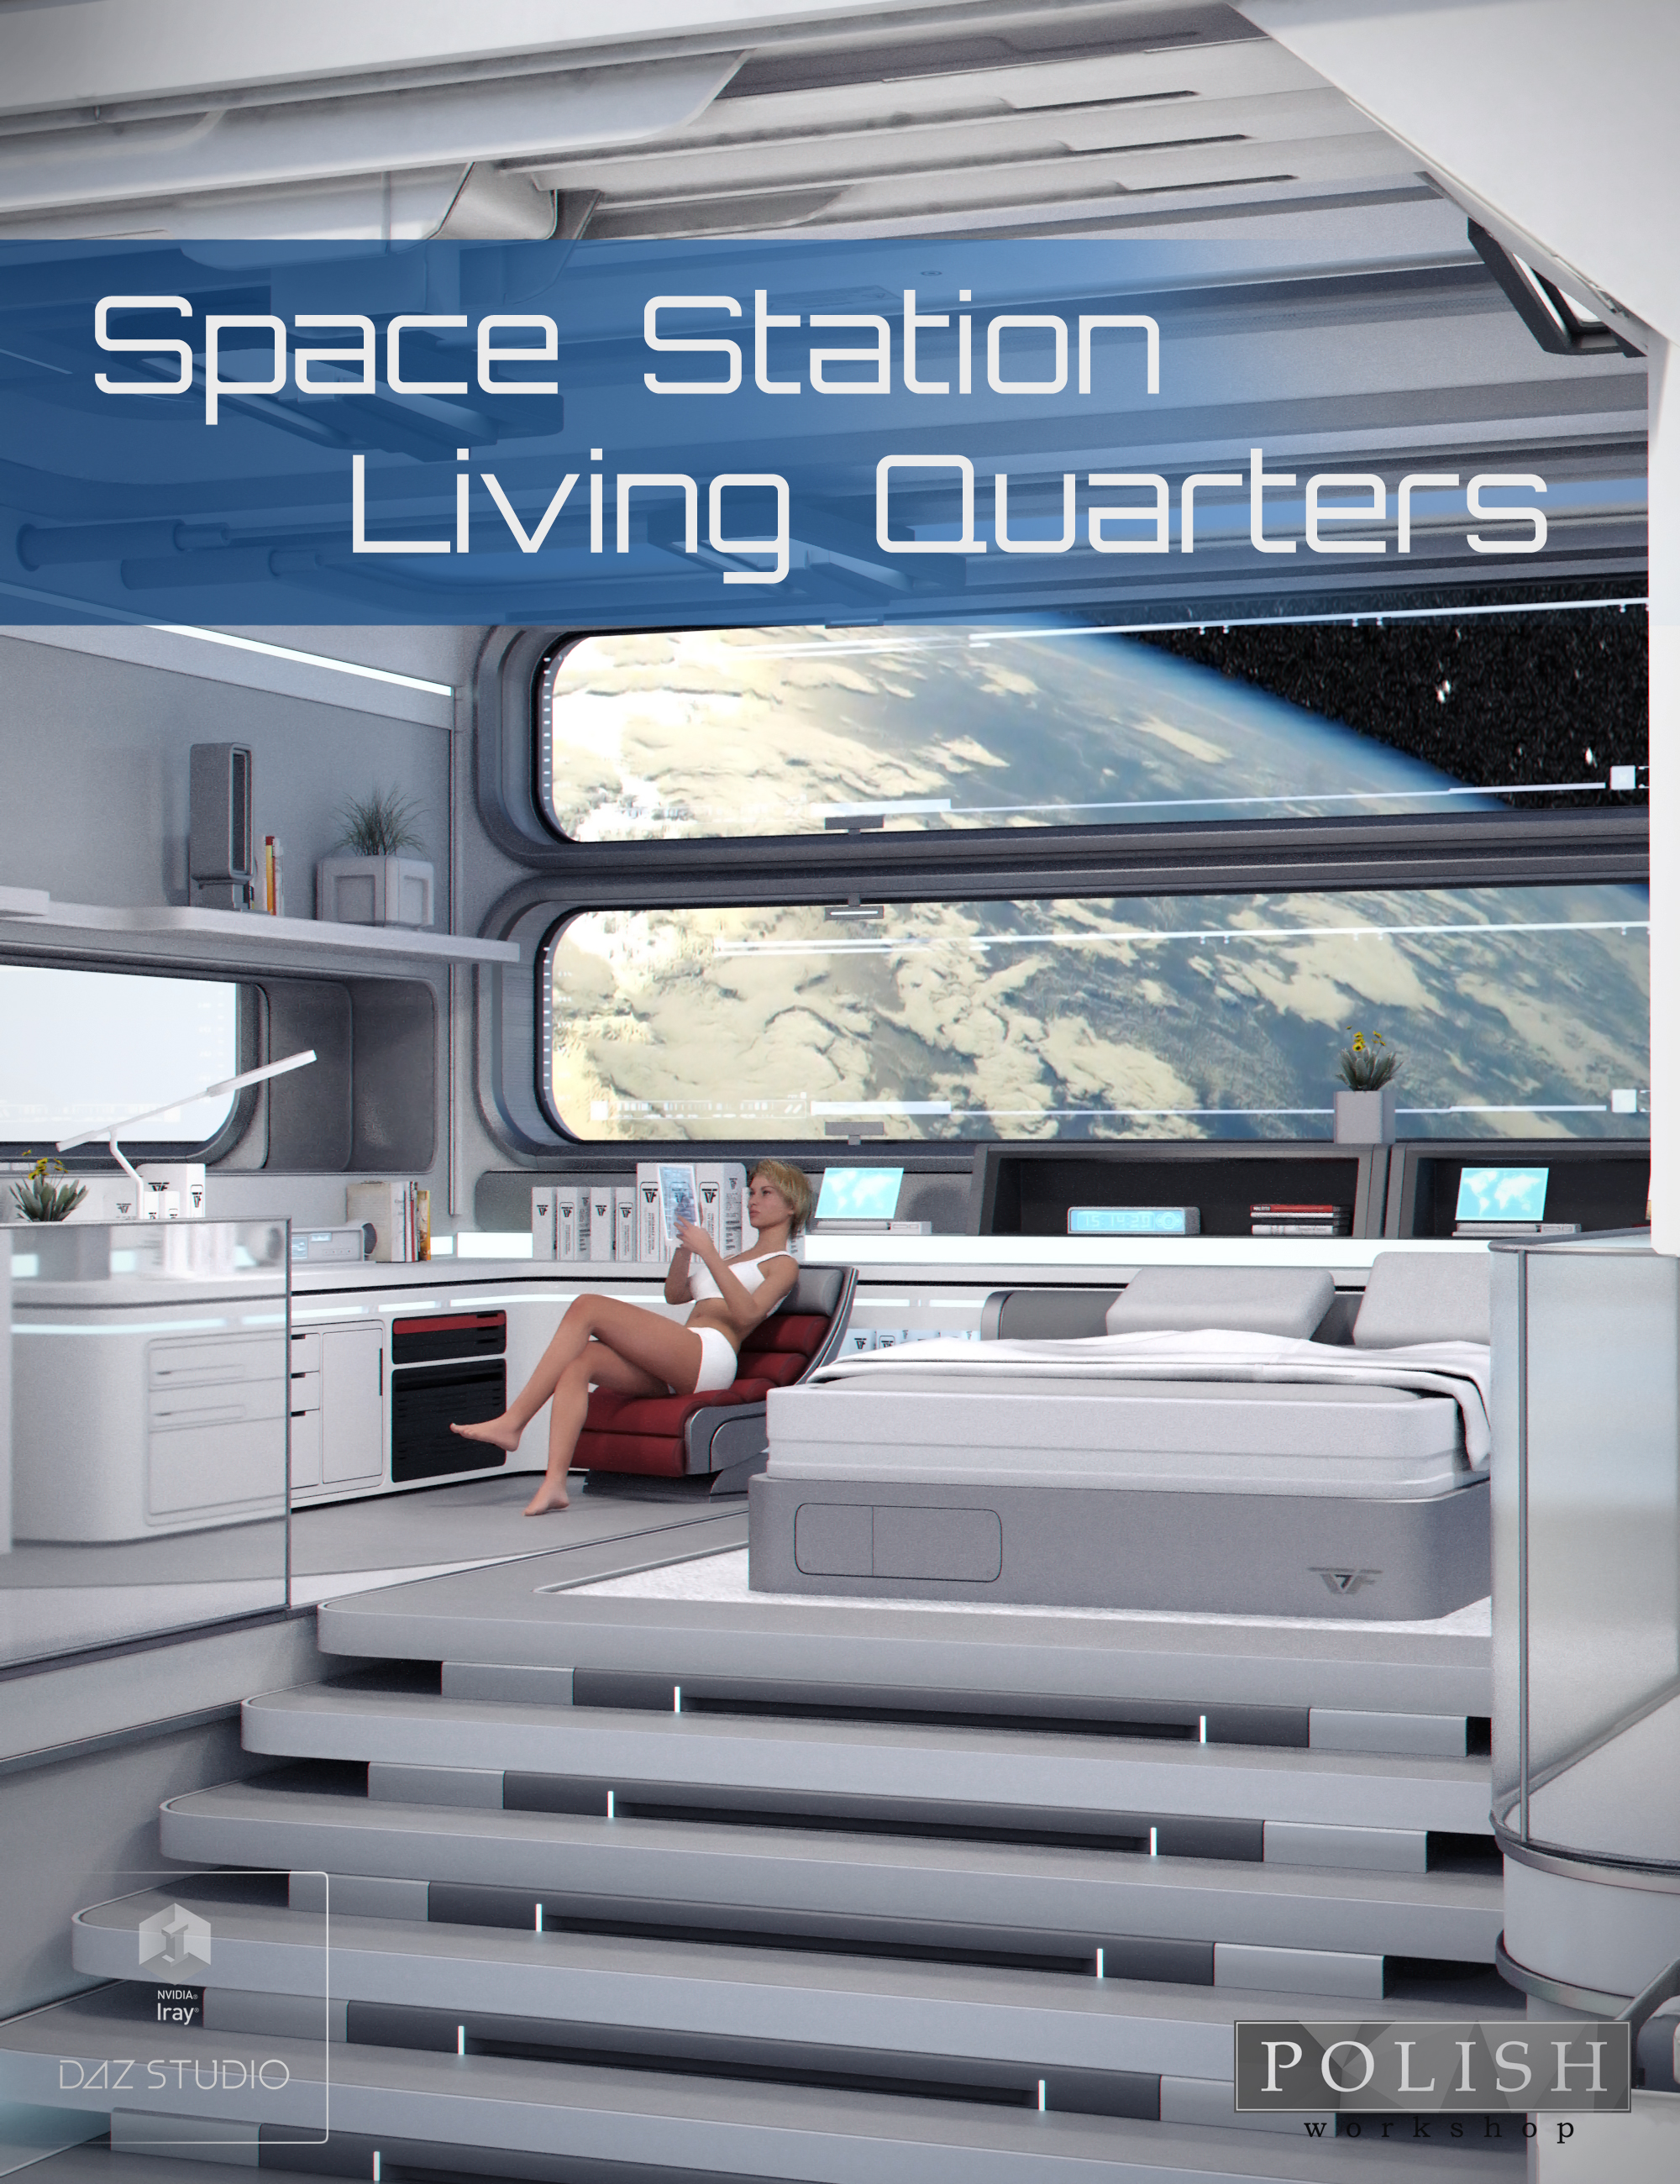 Space Station Living Quarters by: Polish, 3D Models by Daz 3D